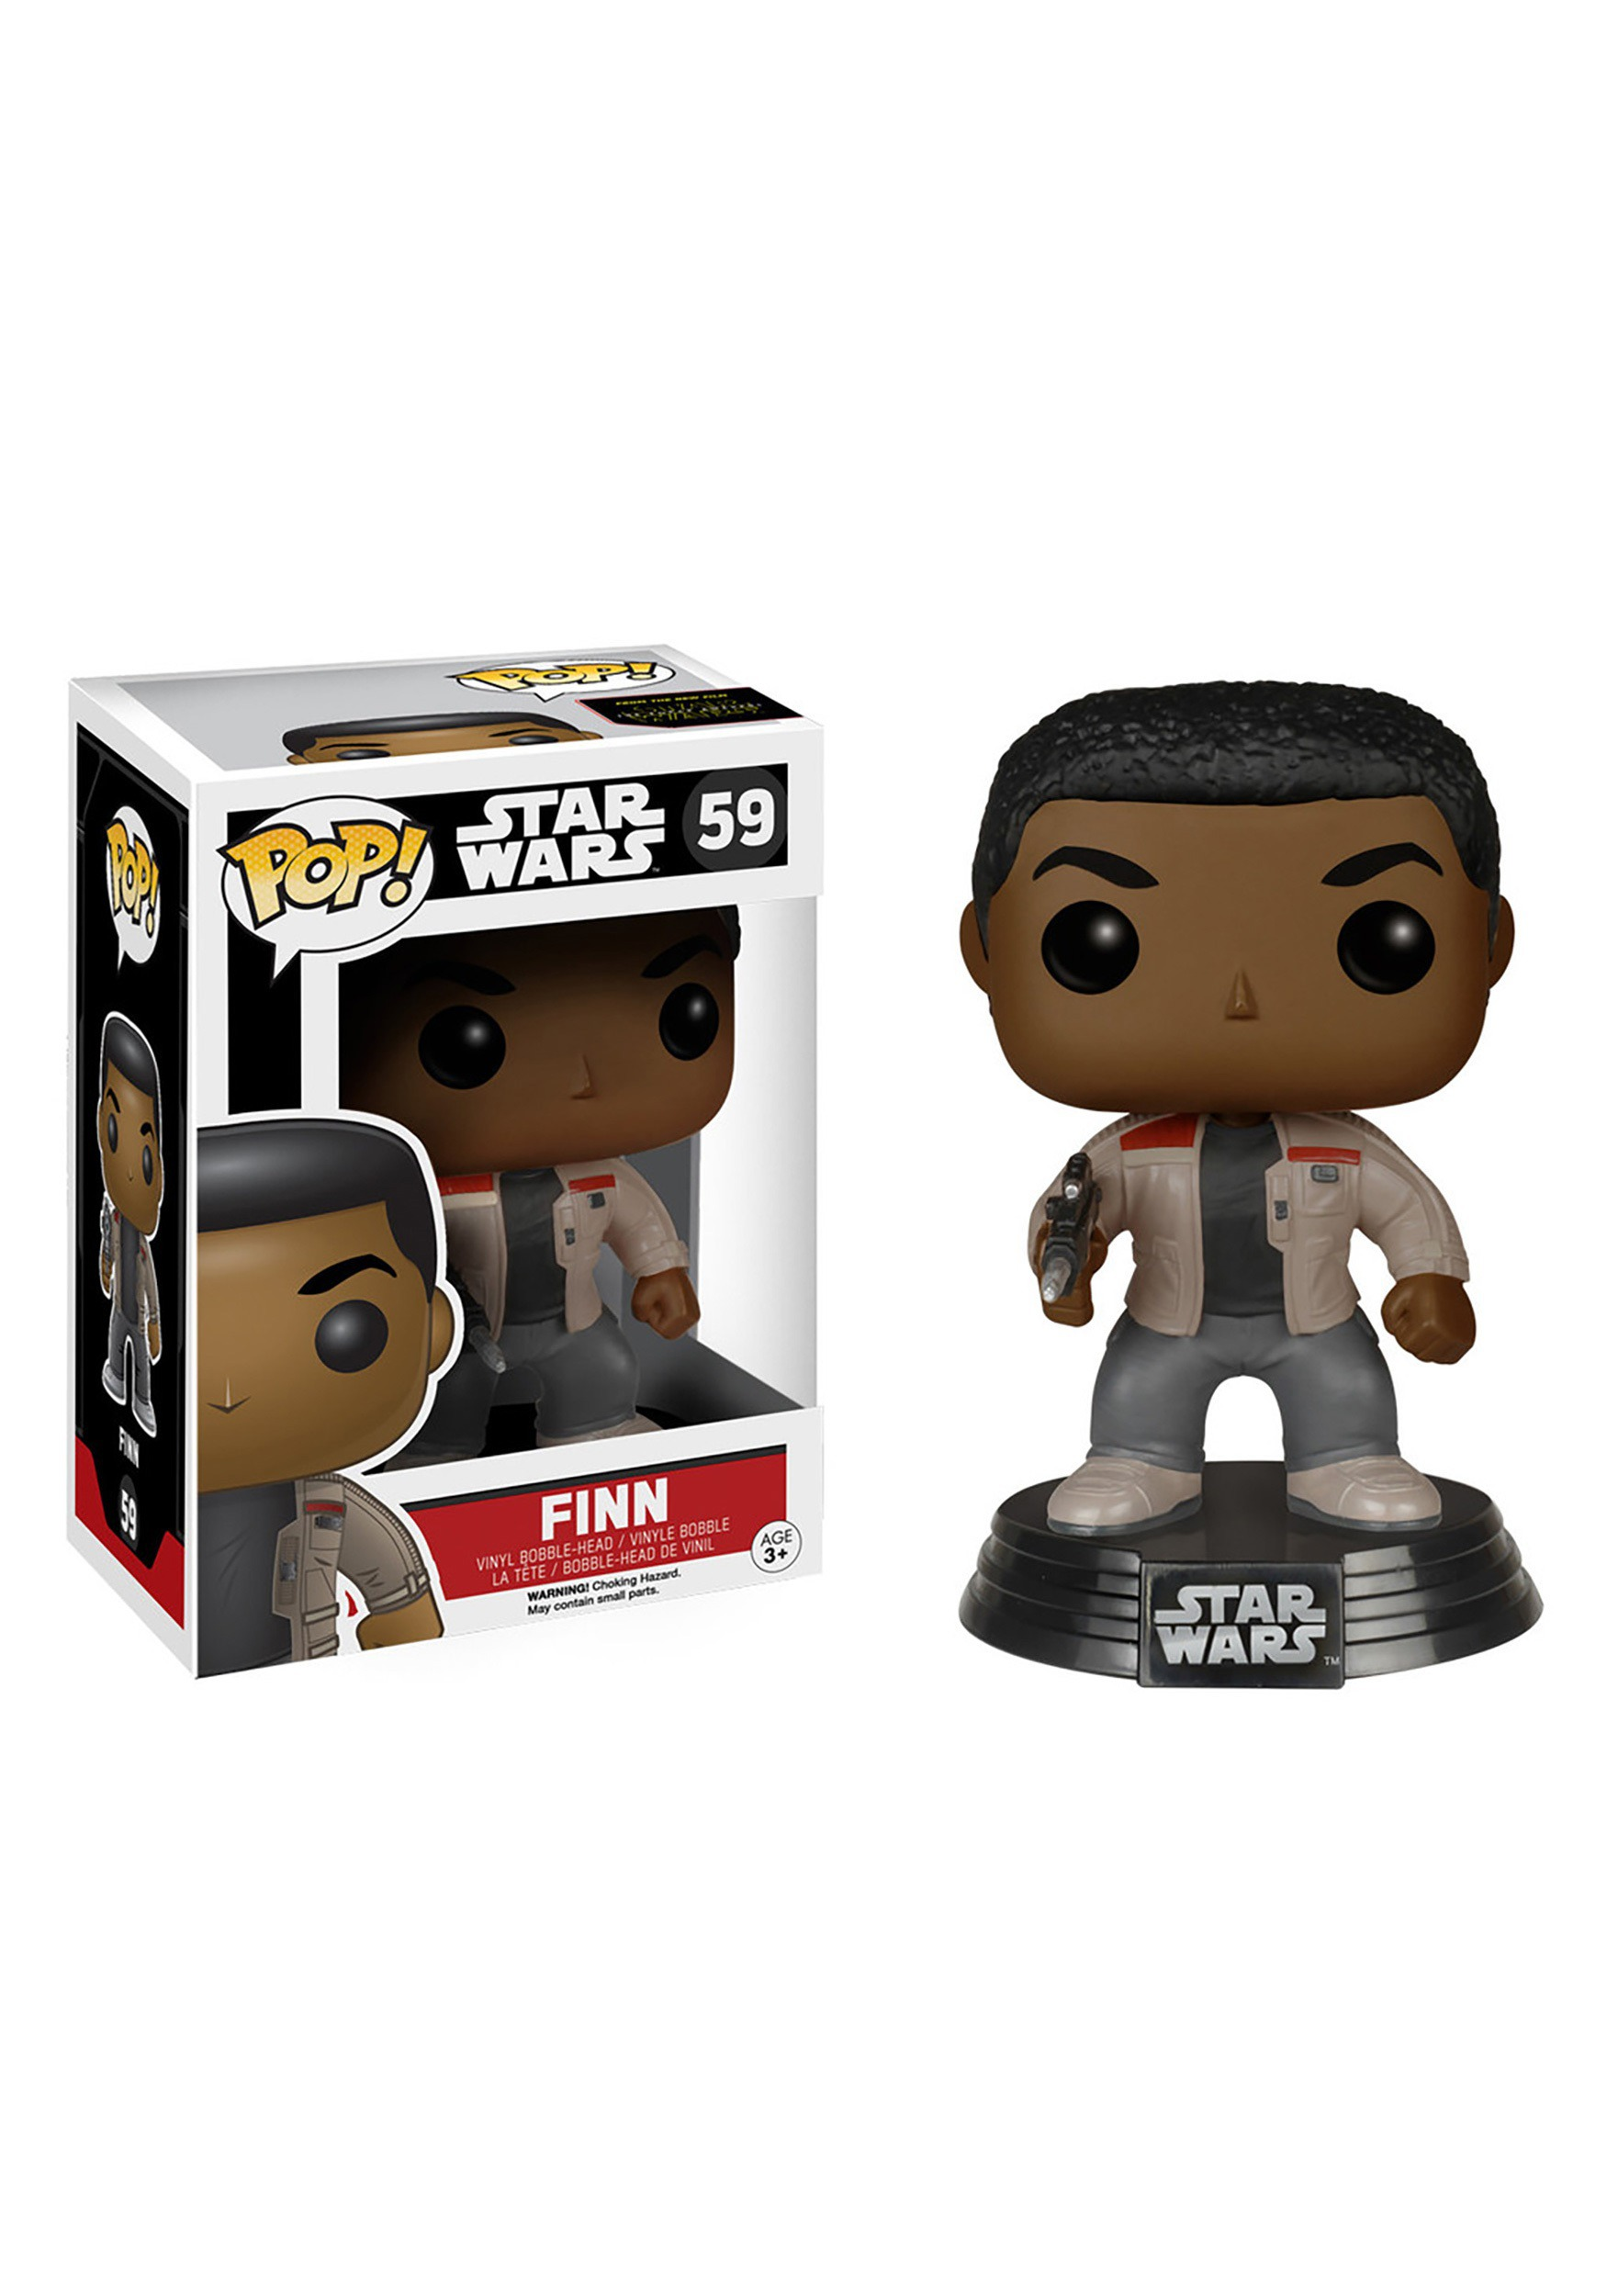 POP! Star Wars E7 Finn Bobblehead Figure FN6221